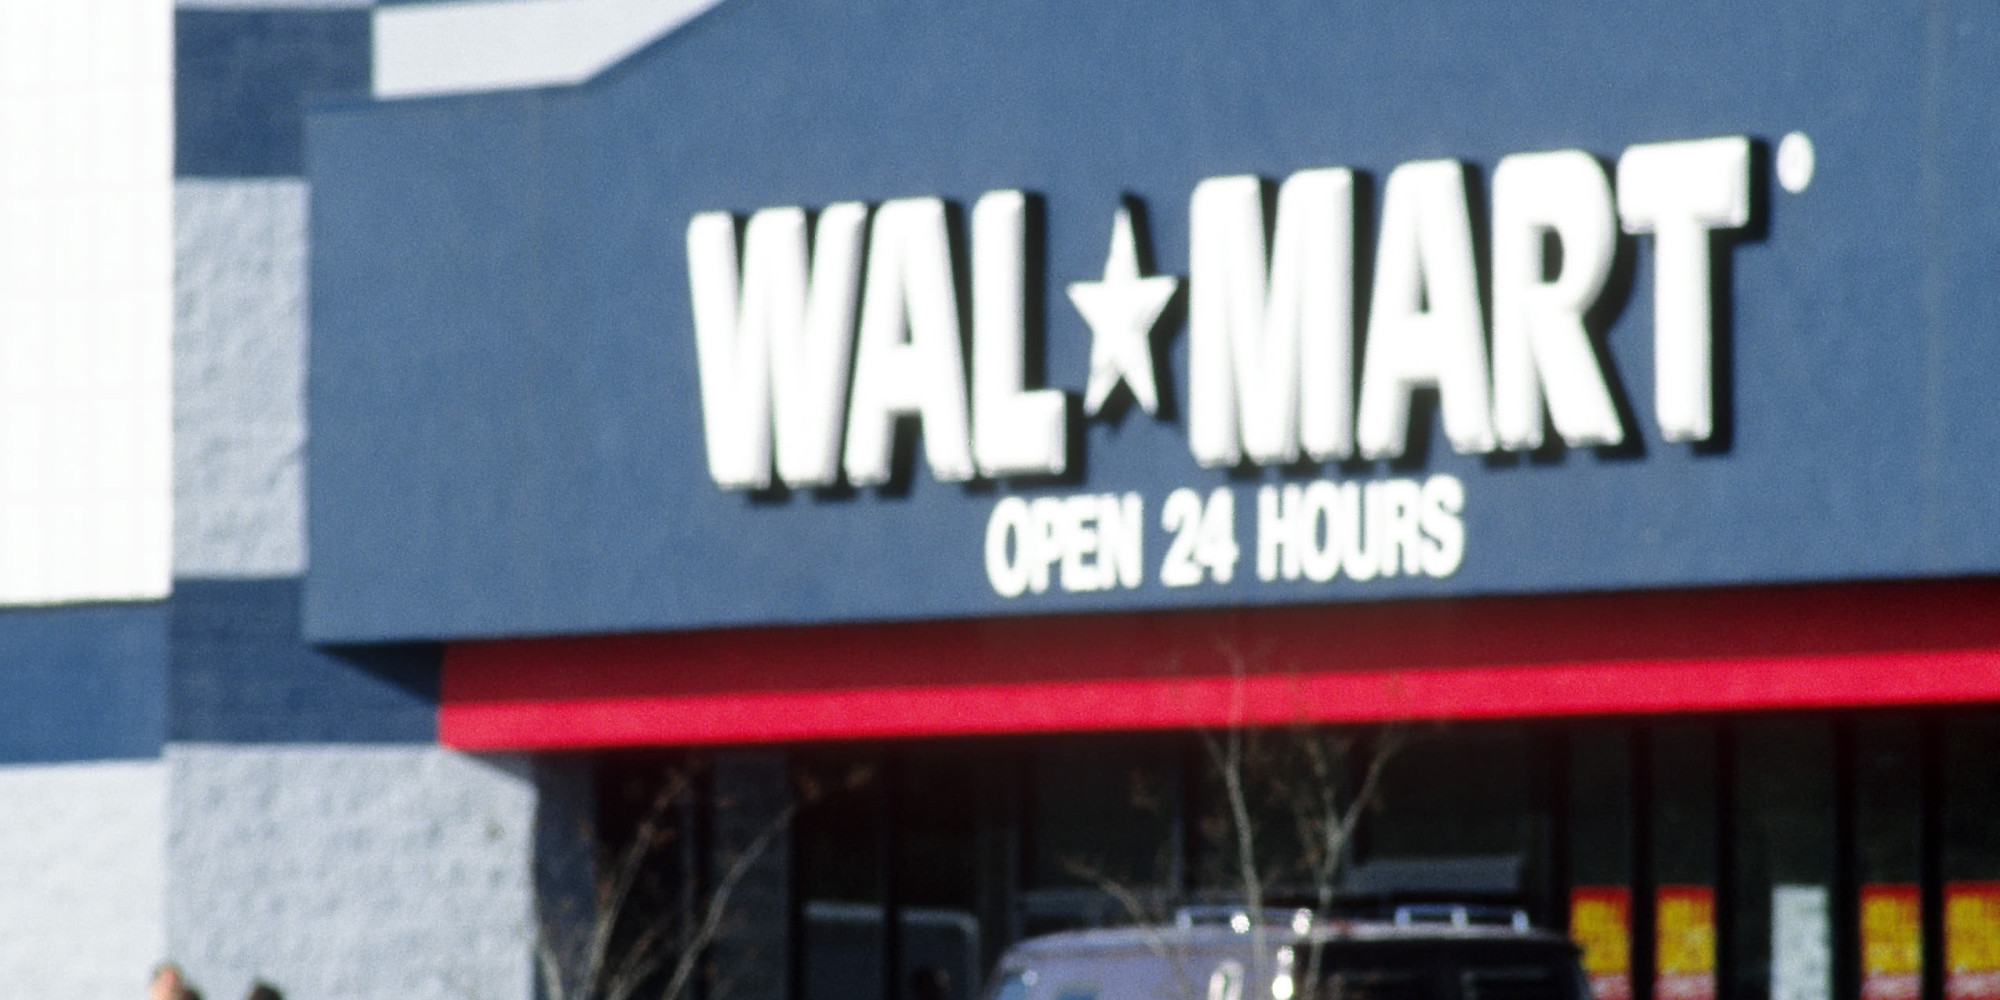 Walmart Linked To Higher Crime Rates: Study | HuffPost